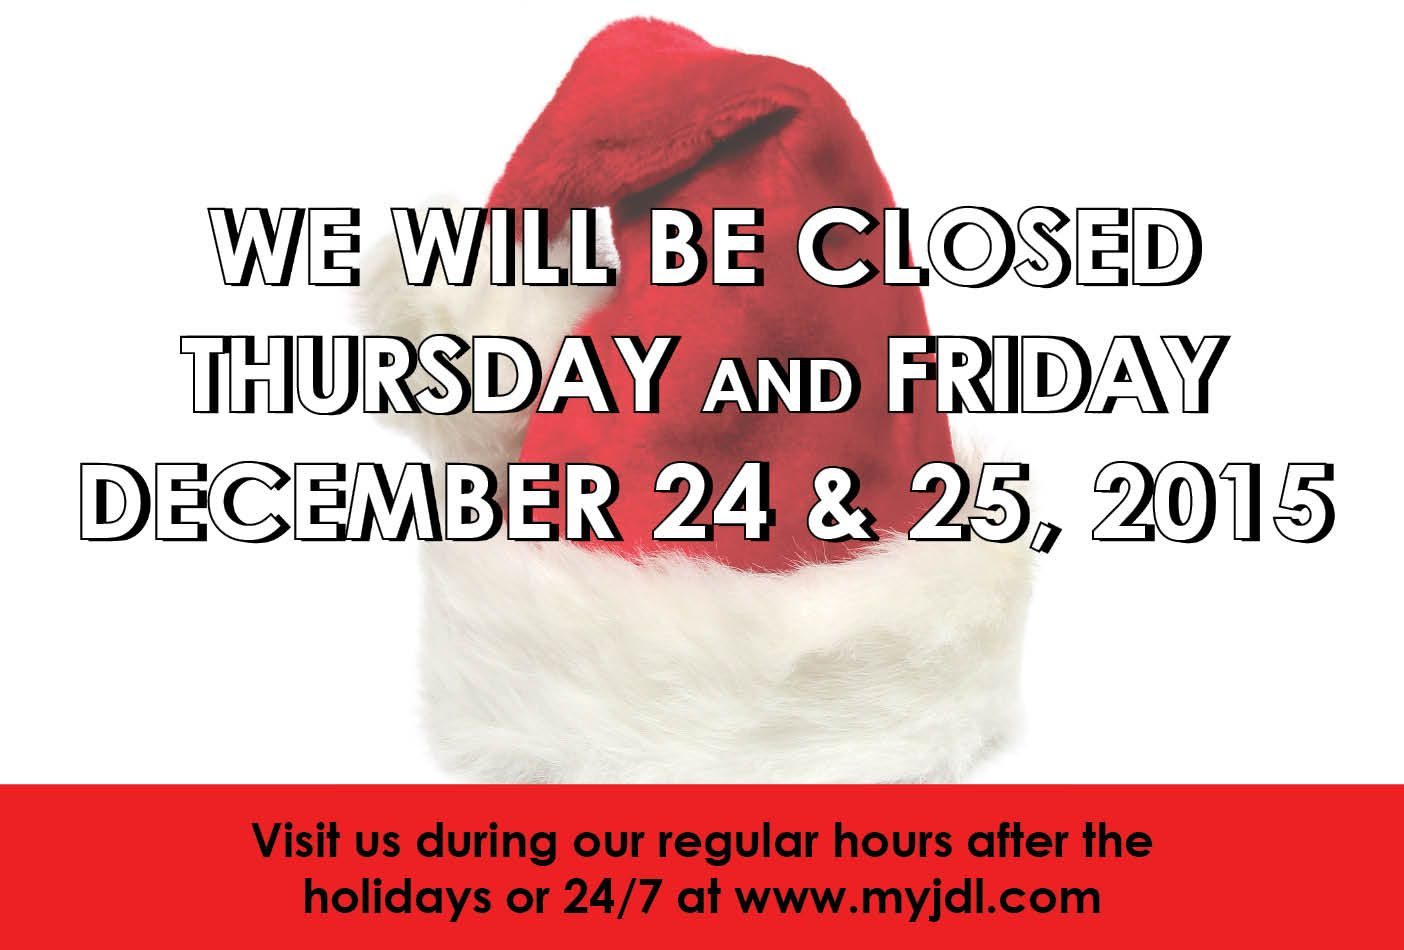 Don T Forget All Branches Are Closed Christmas Eve And Christmas